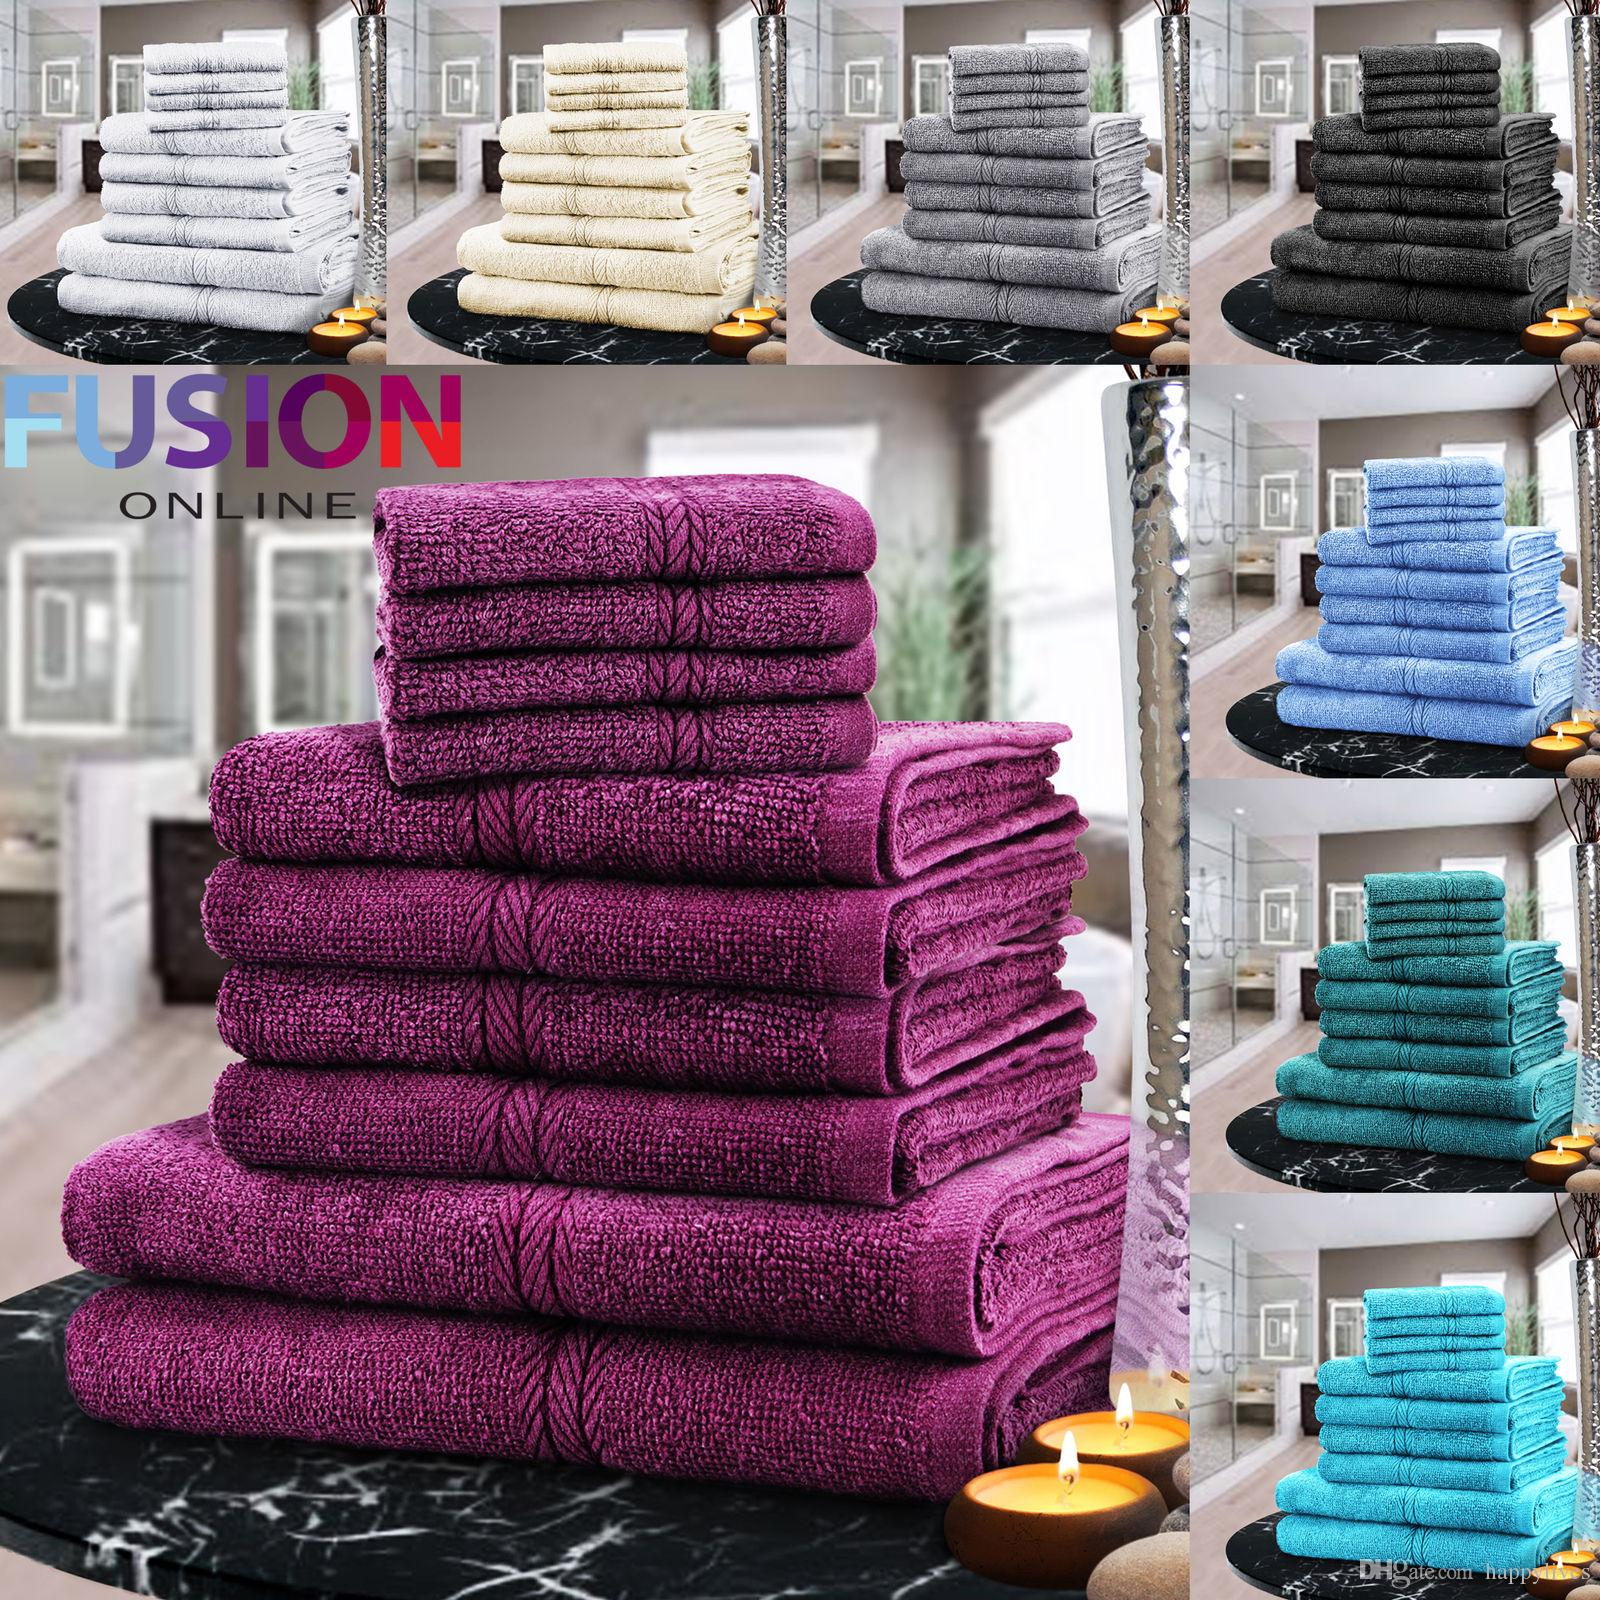 bf6e2c01f2b LUXURY TOWEL BALE SET 100% COTTON FACE HAND BATH BATHROOM TOWELS 9 Designer  Towels Beach Towel Sale From Happylives